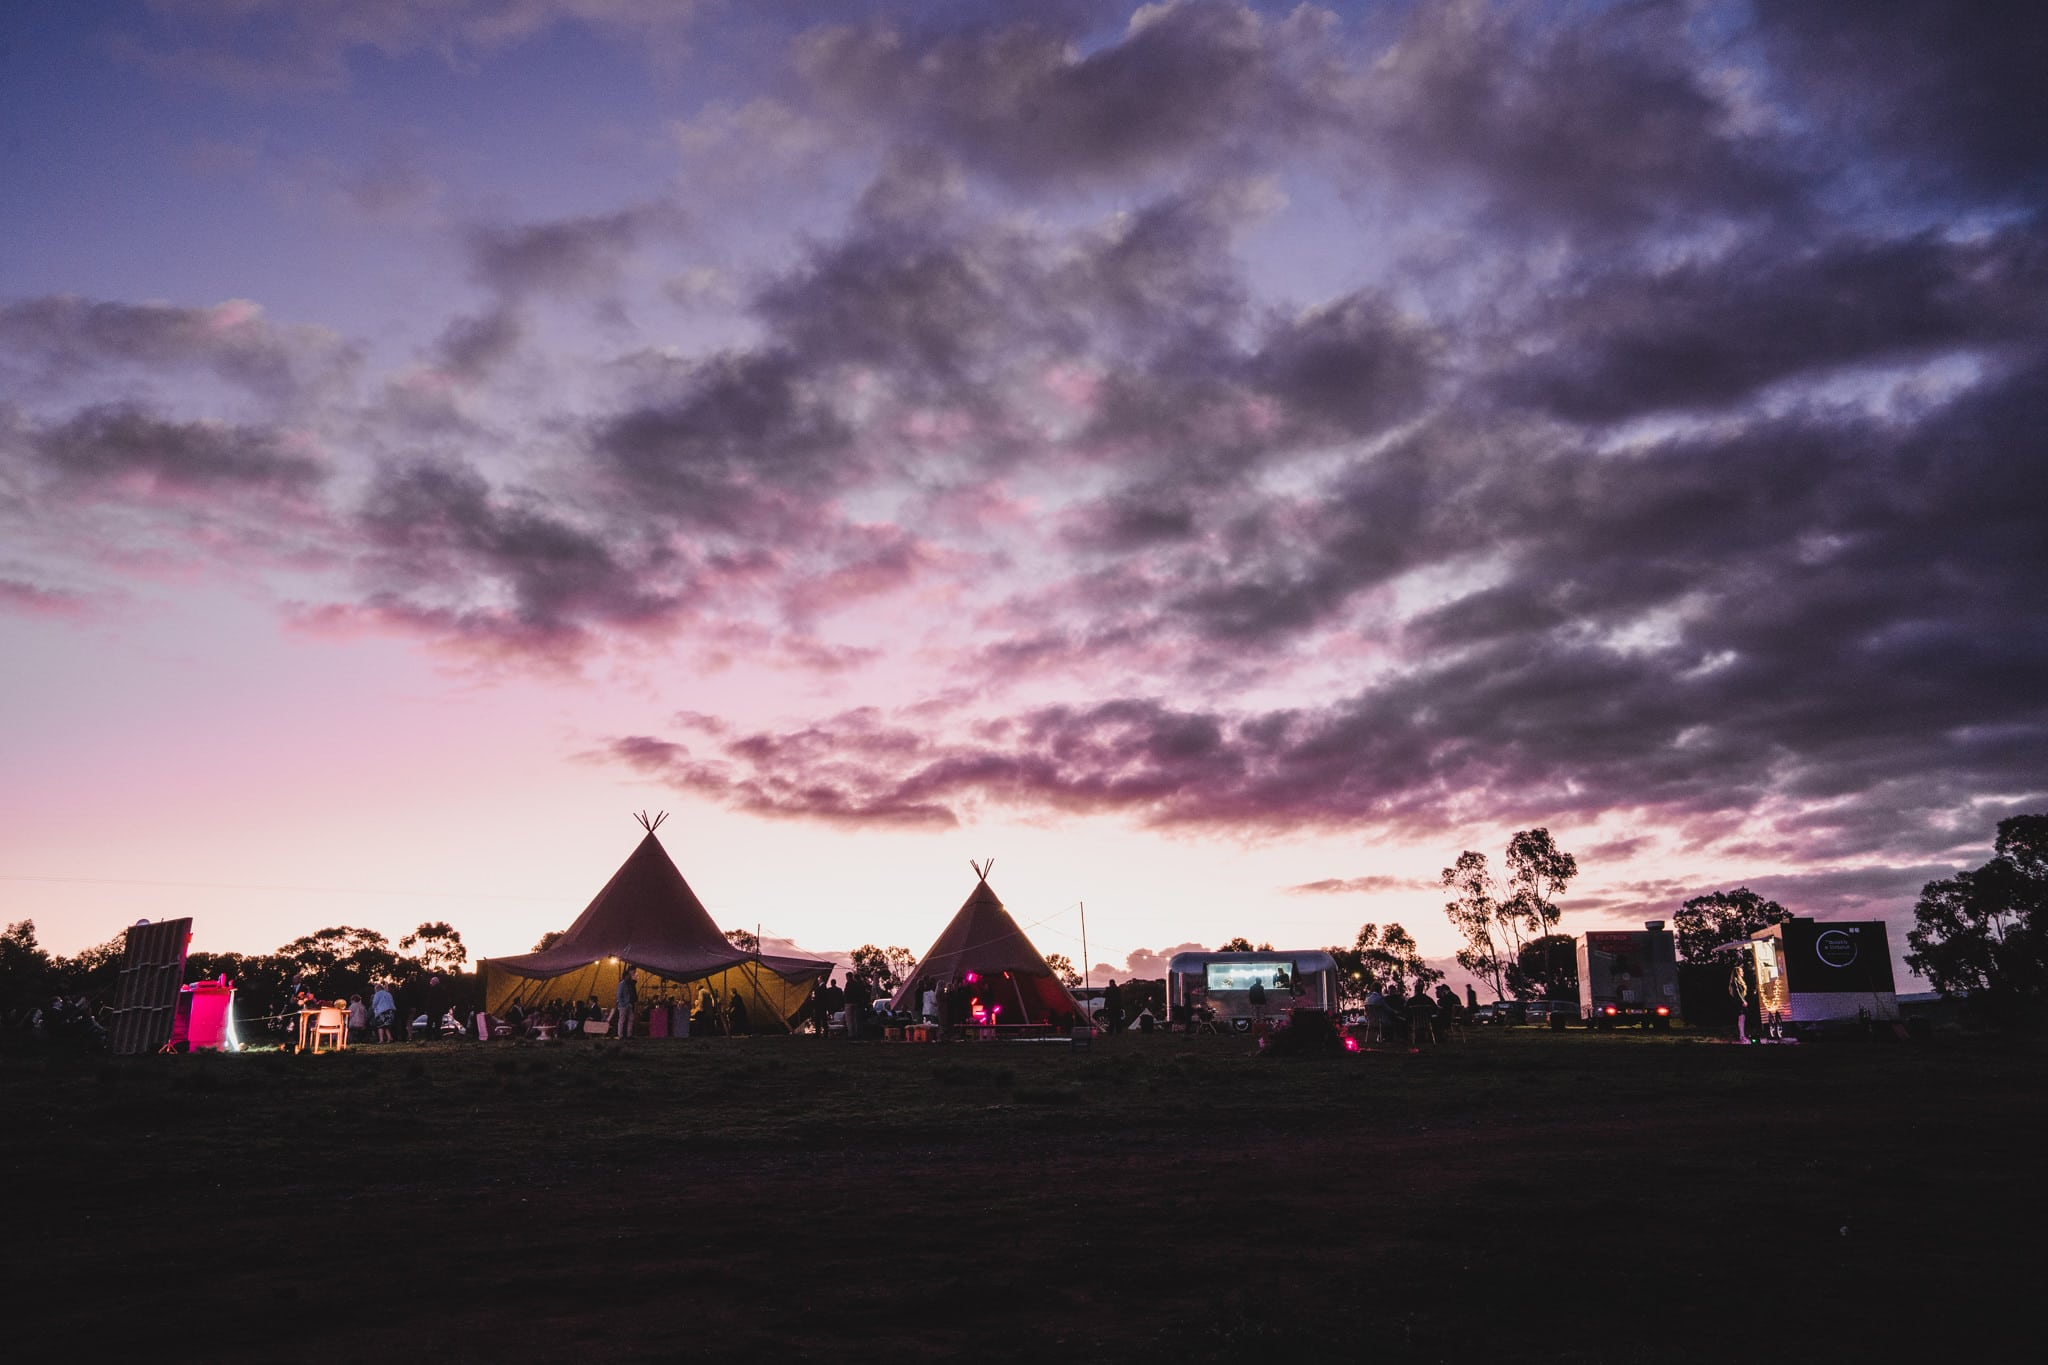 Photo of the Tipis and Food trucks during sunset at Camp Sunnystones during Kate and Brodie's wedding.